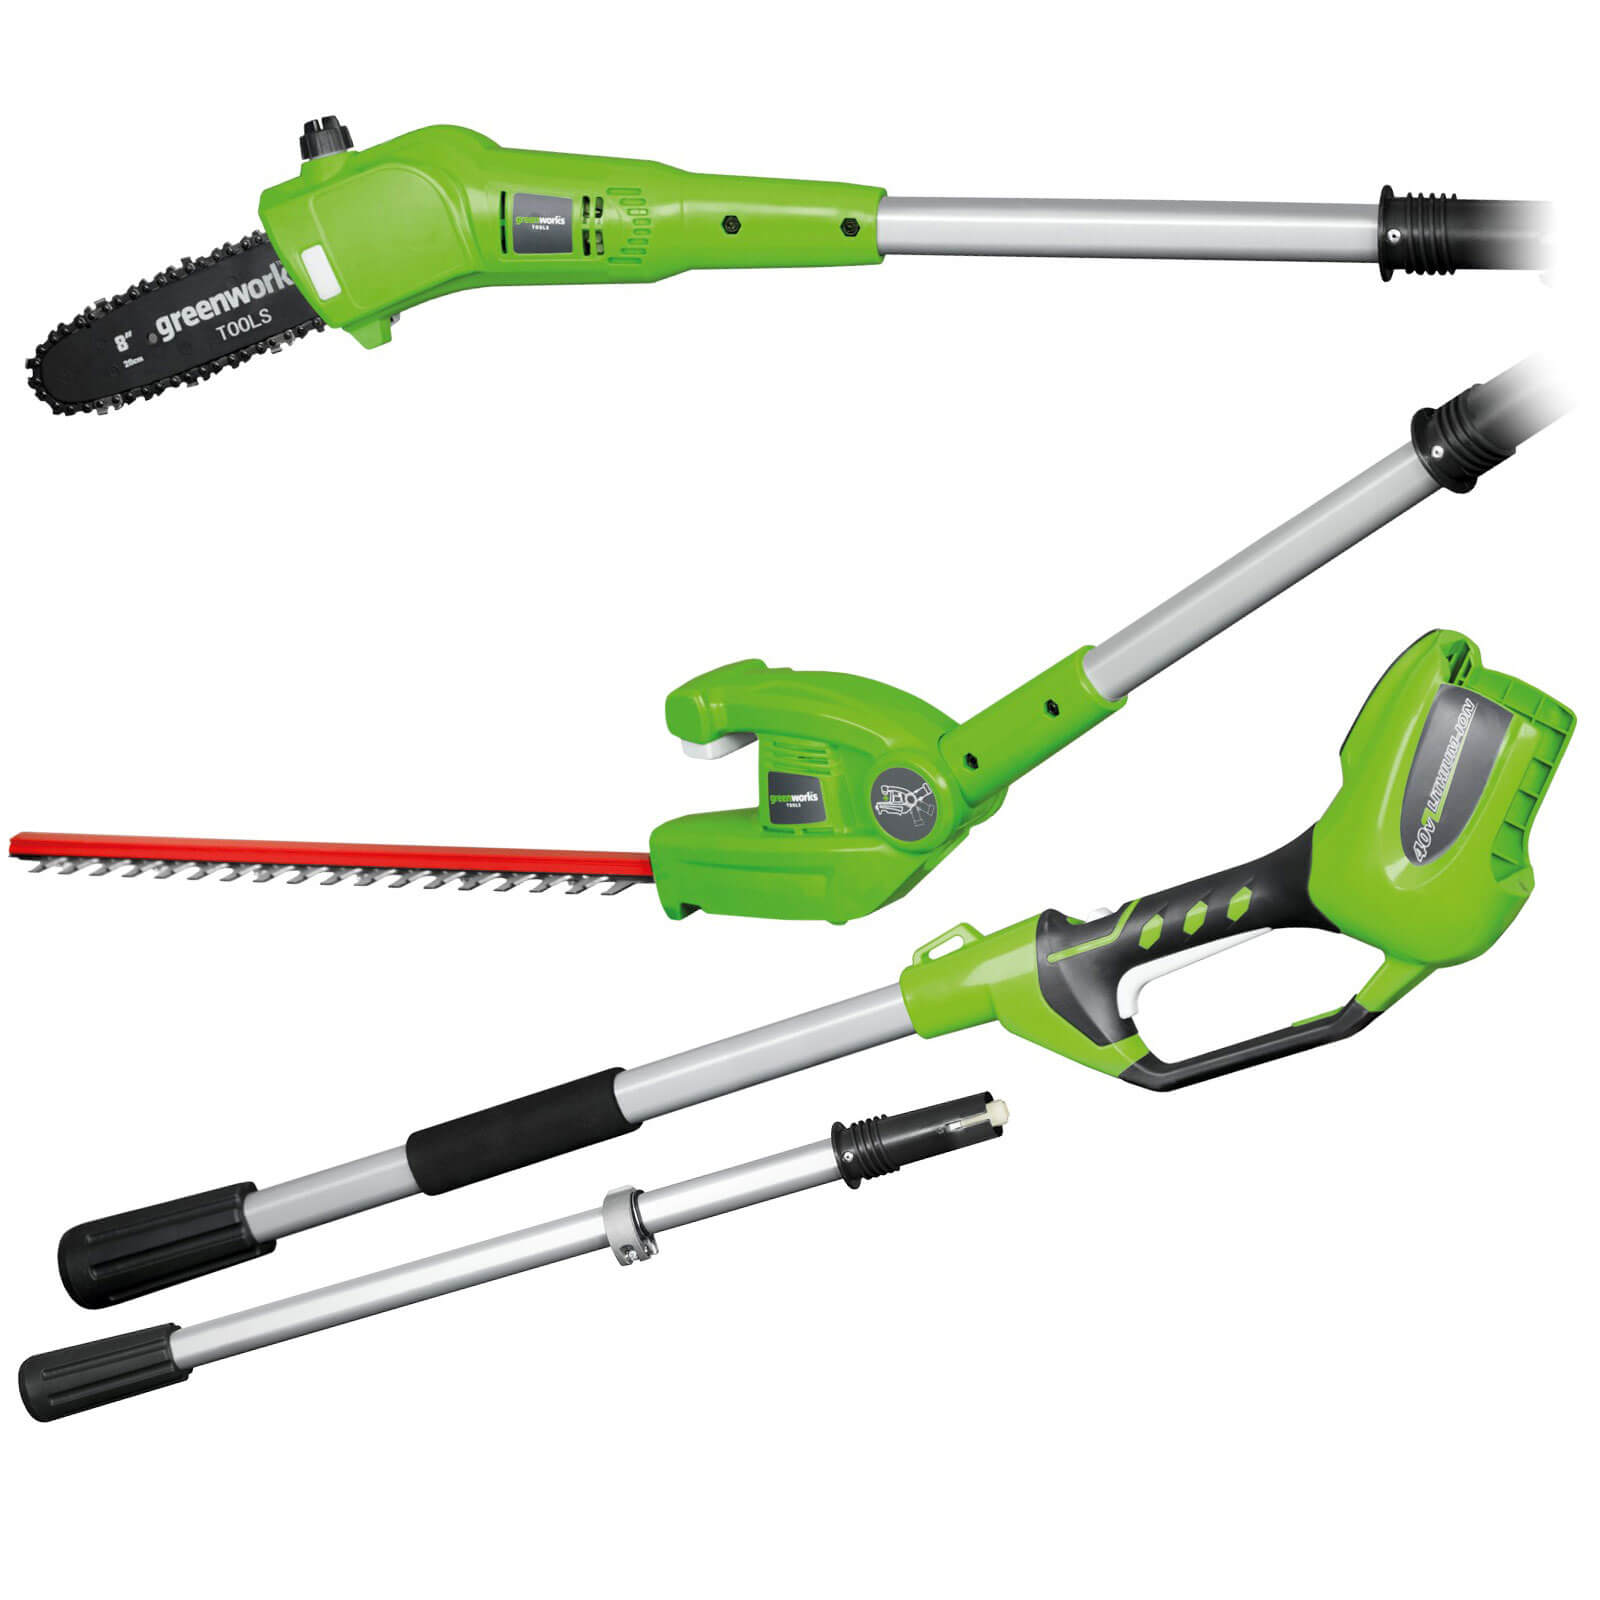 Tree pruner shop for cheap garden tools and save online for Affordable garden tools